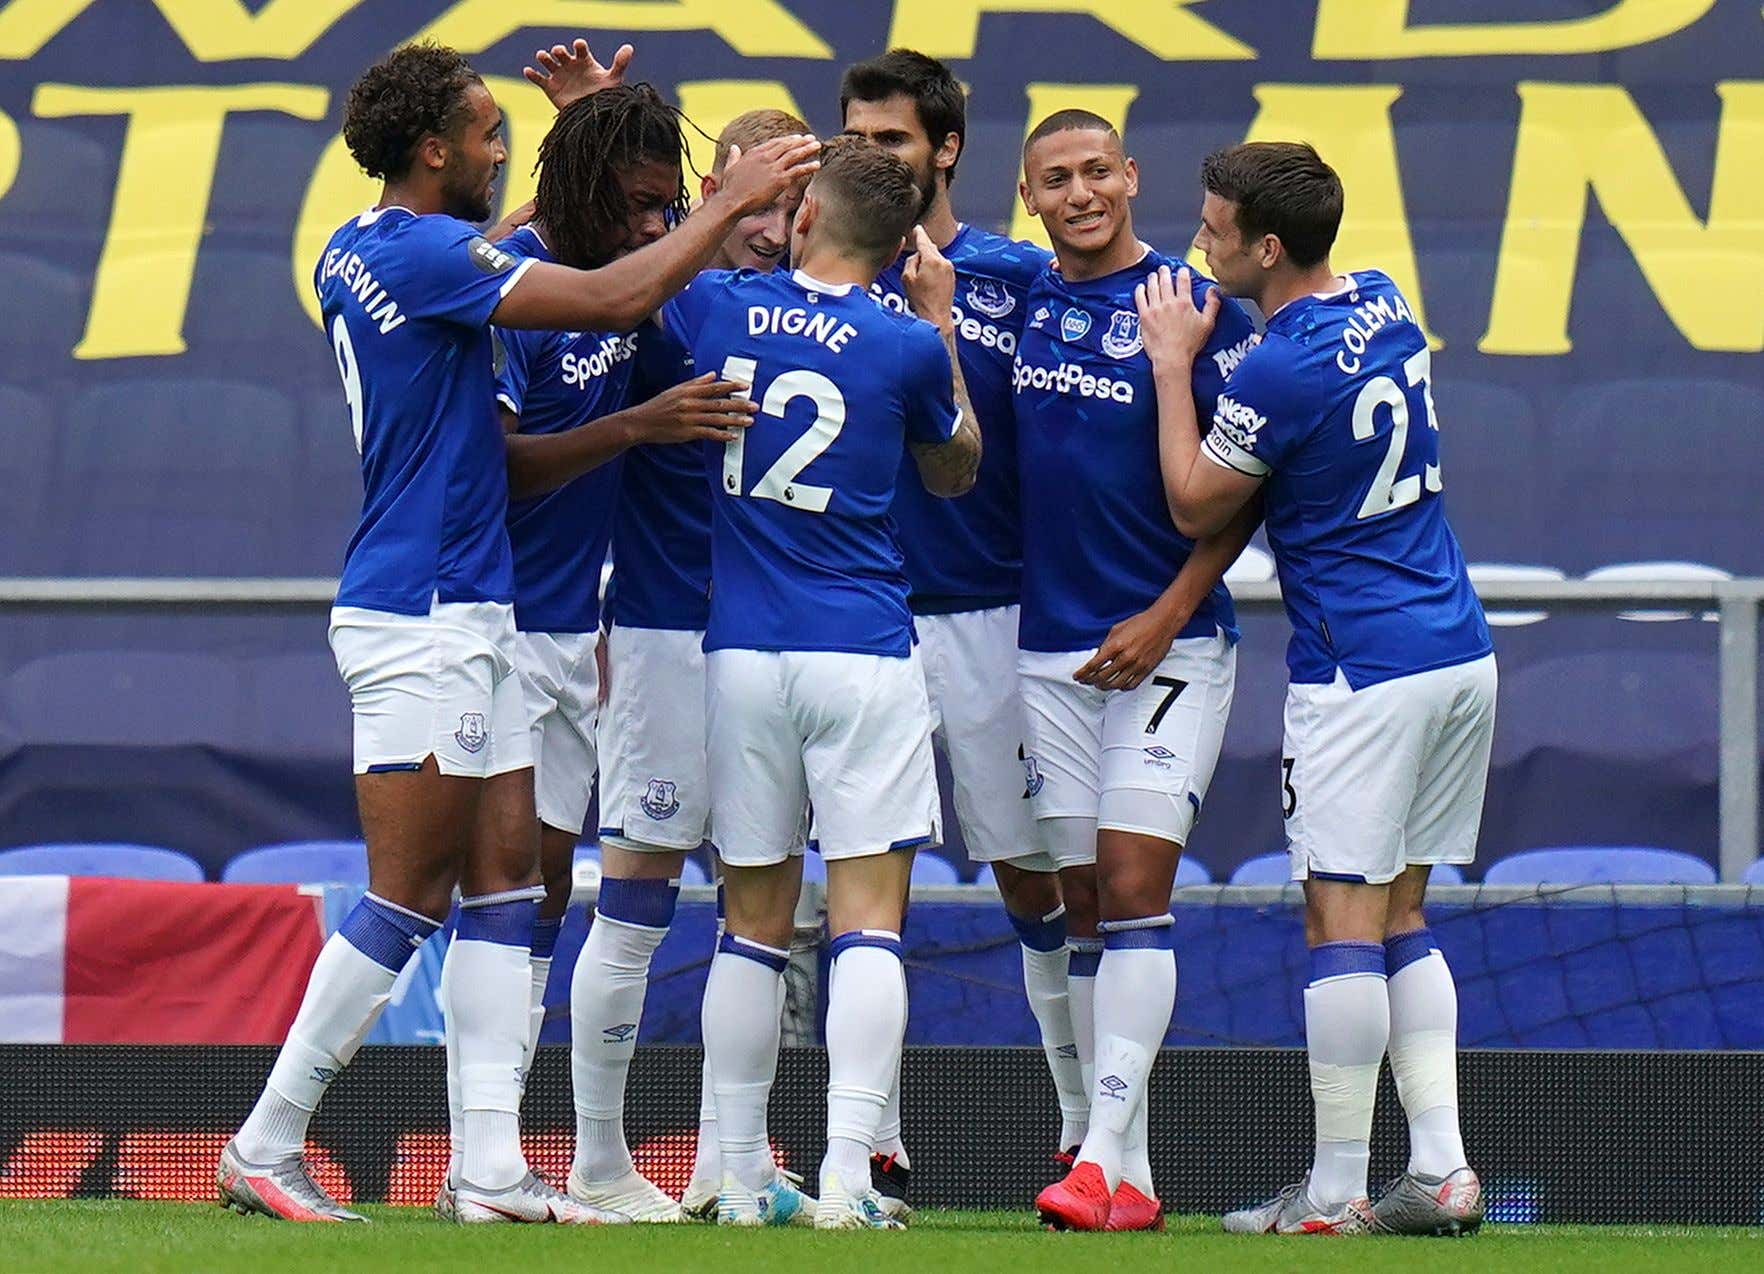 Richarlison of Everton (2-R) reacts with team mates after scoring the 1-0 lead during the English Premier League match between Everton FC and Leicester City in Liverpool, Britain, 01 July 2020.